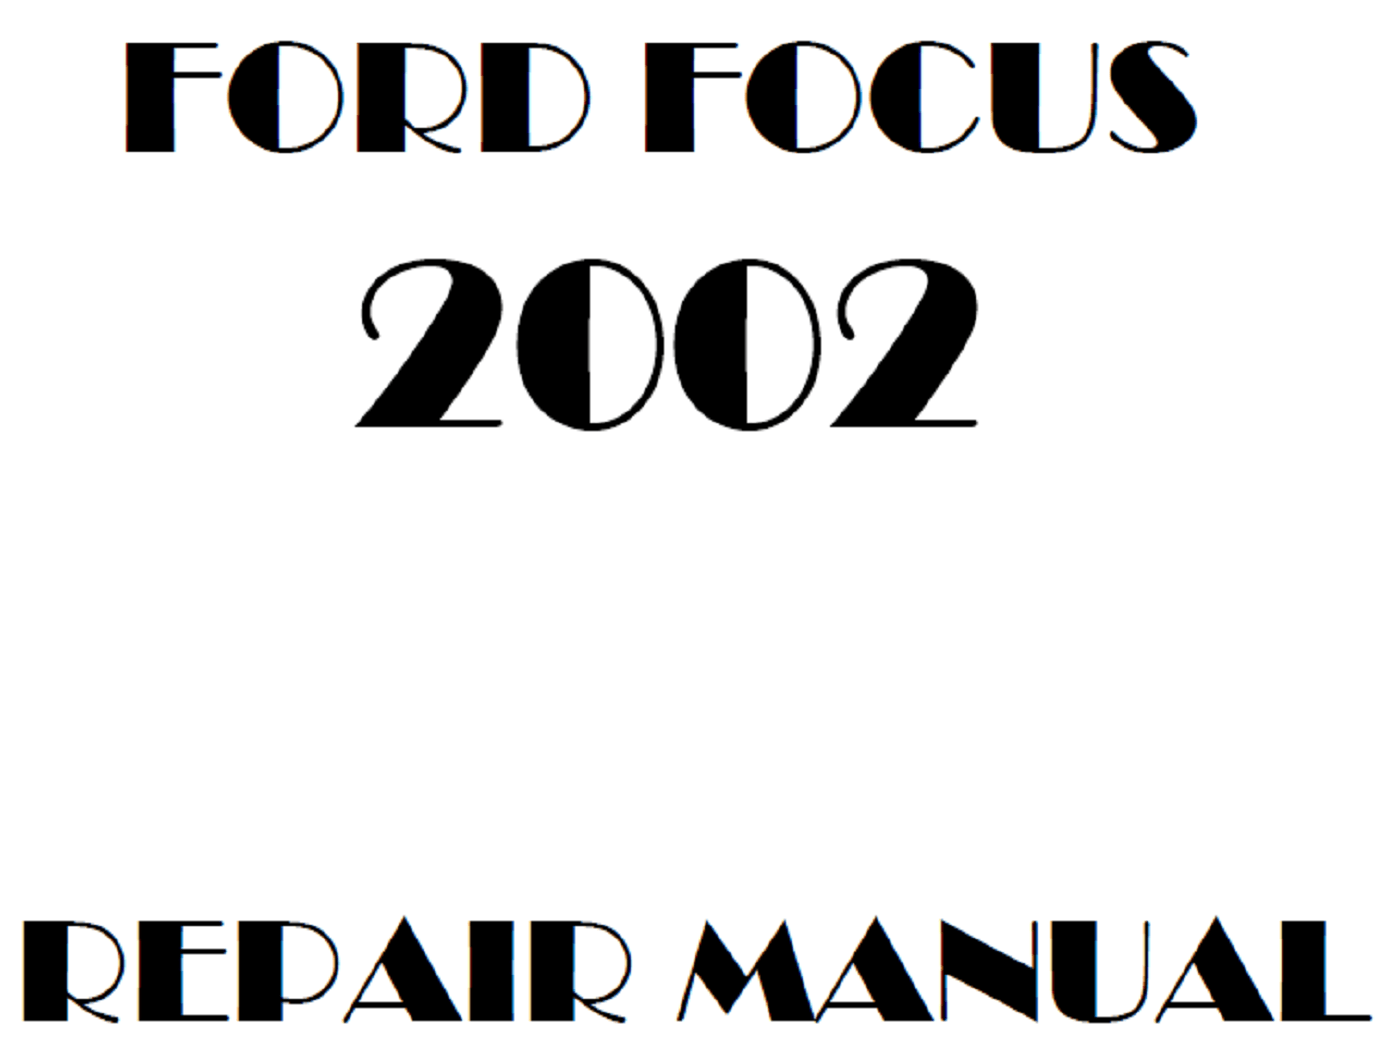 2002 Ford Focus repair manual